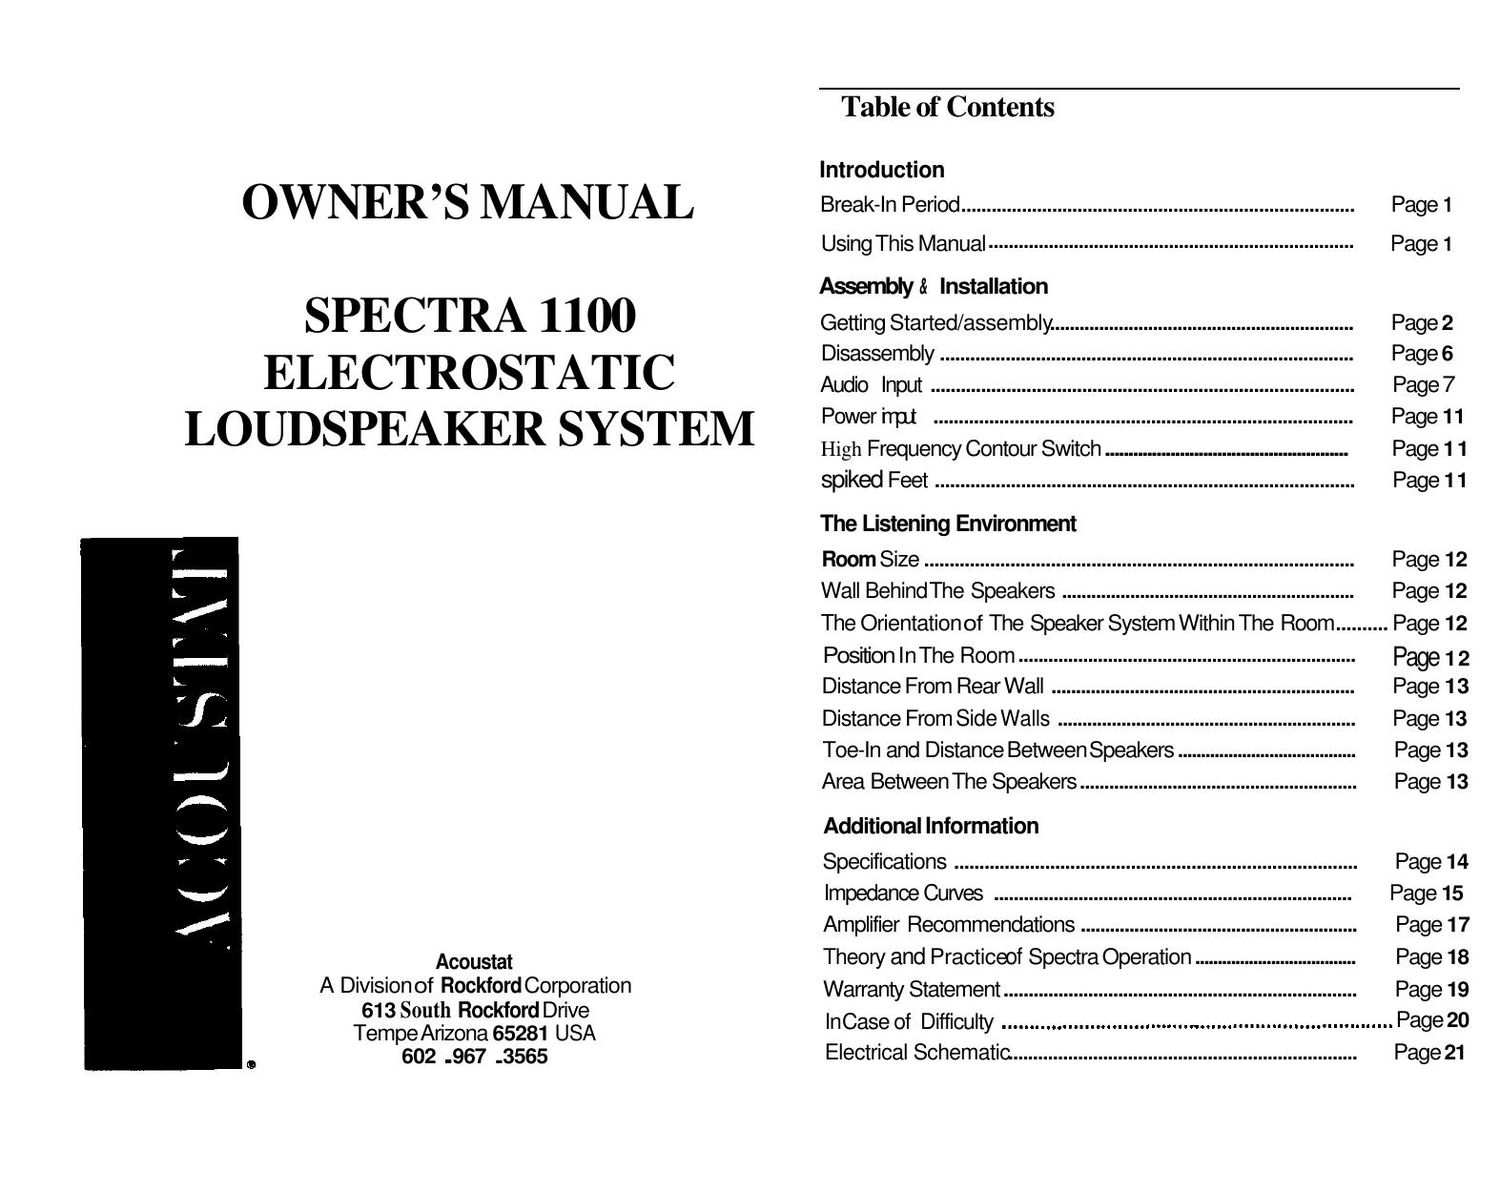 Acoustat Spectra 1100 Owners Manual